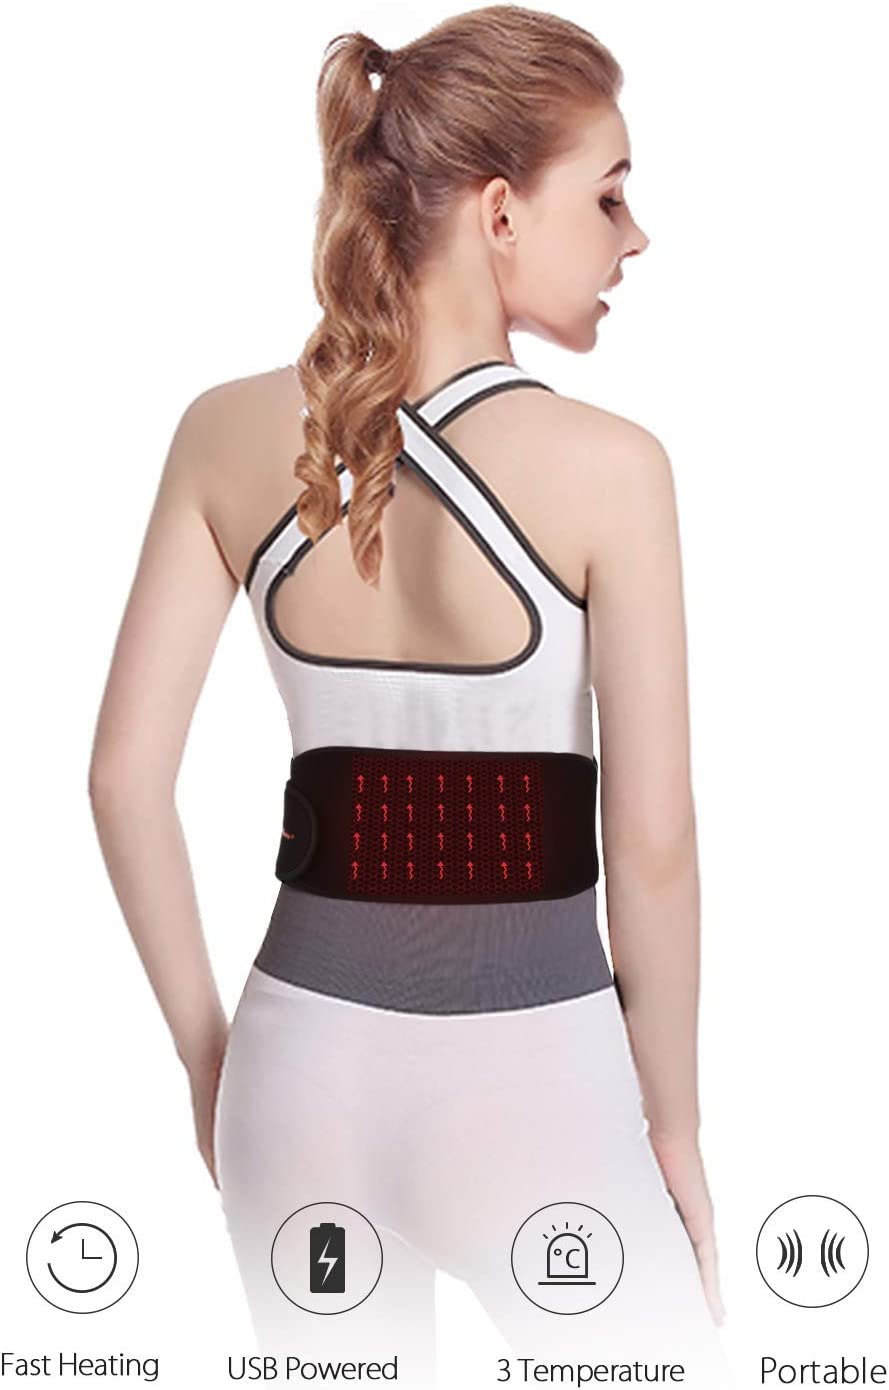 Heating Waist Belt Far Infrared USB Powered, Portable Electric Heating Waist Pad with Graphene Fast Heating Film, 3 Temperature Settings, Can Warm Waist or Belly